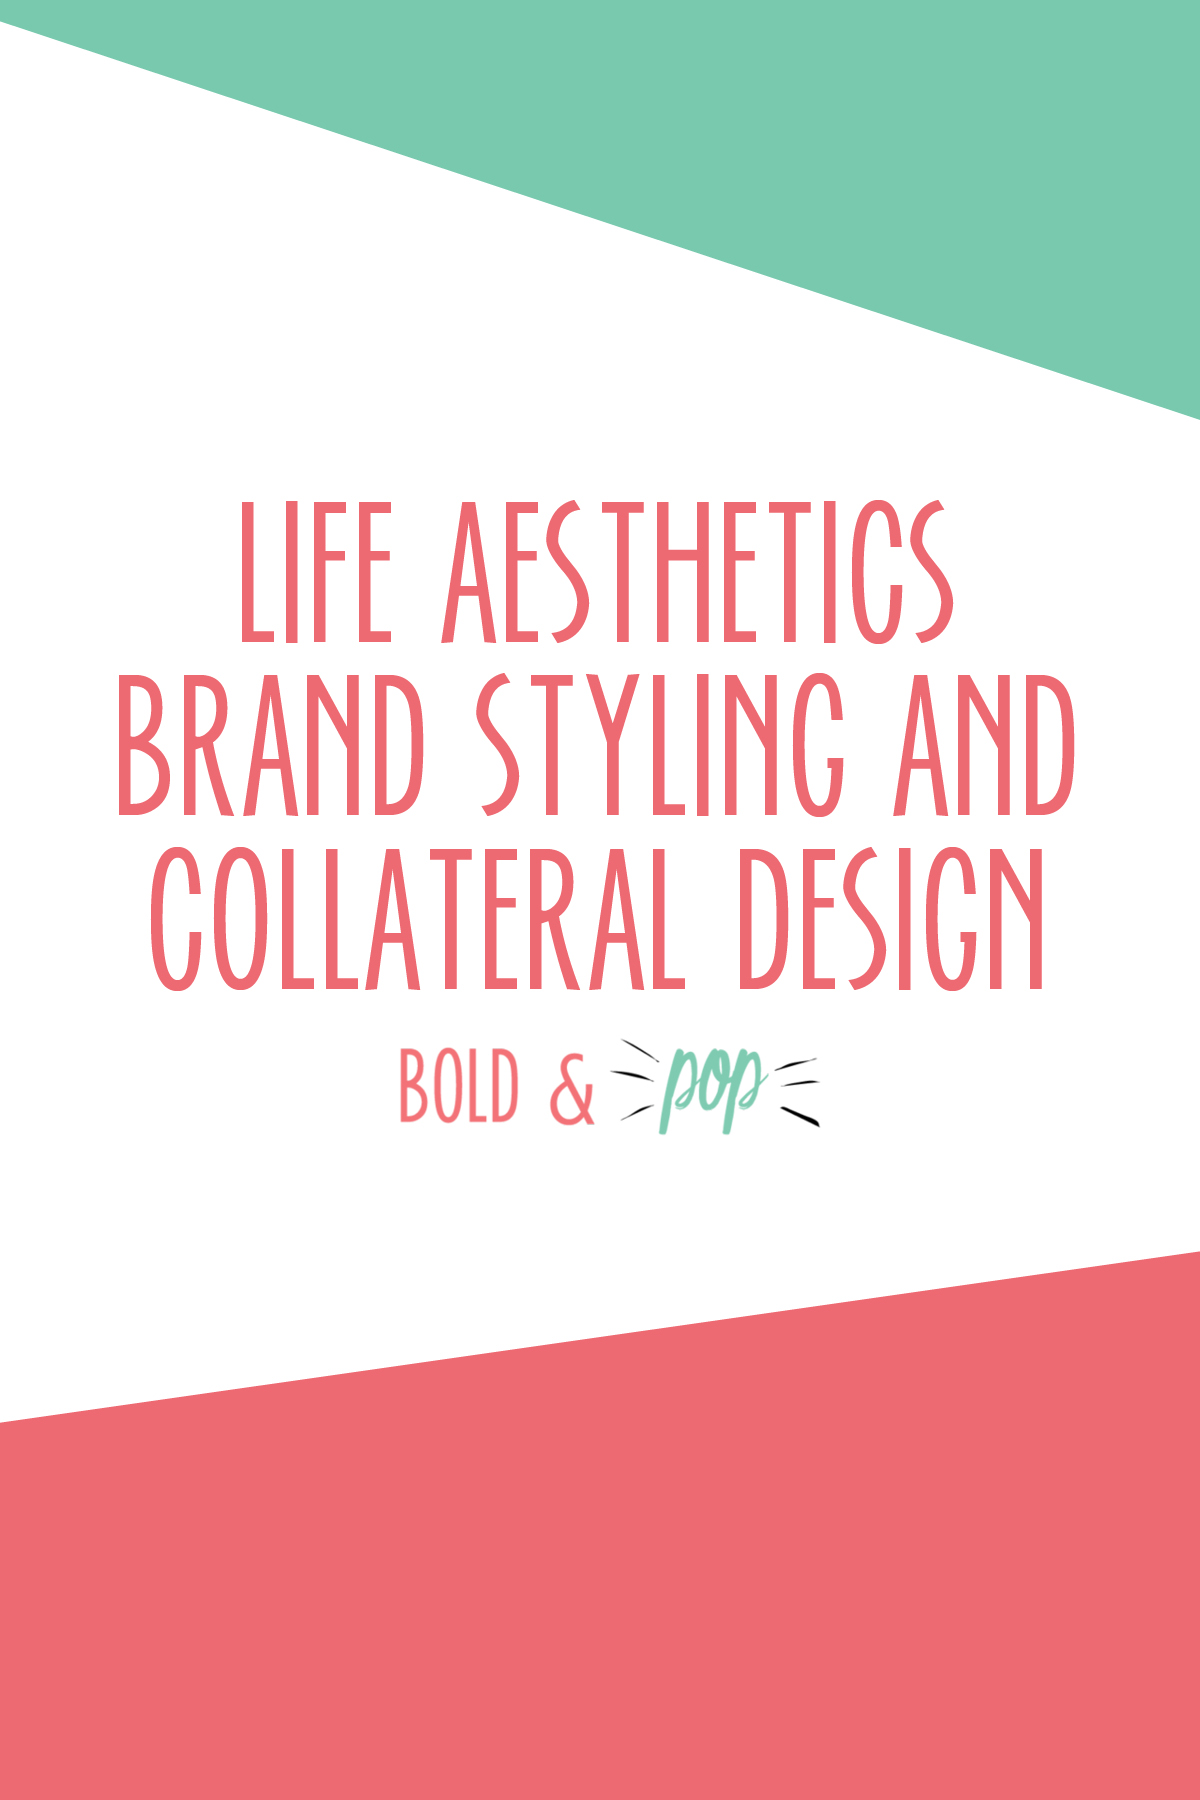 Bold & Pop : Life Aesthetics Brand Styling and Collateral Design